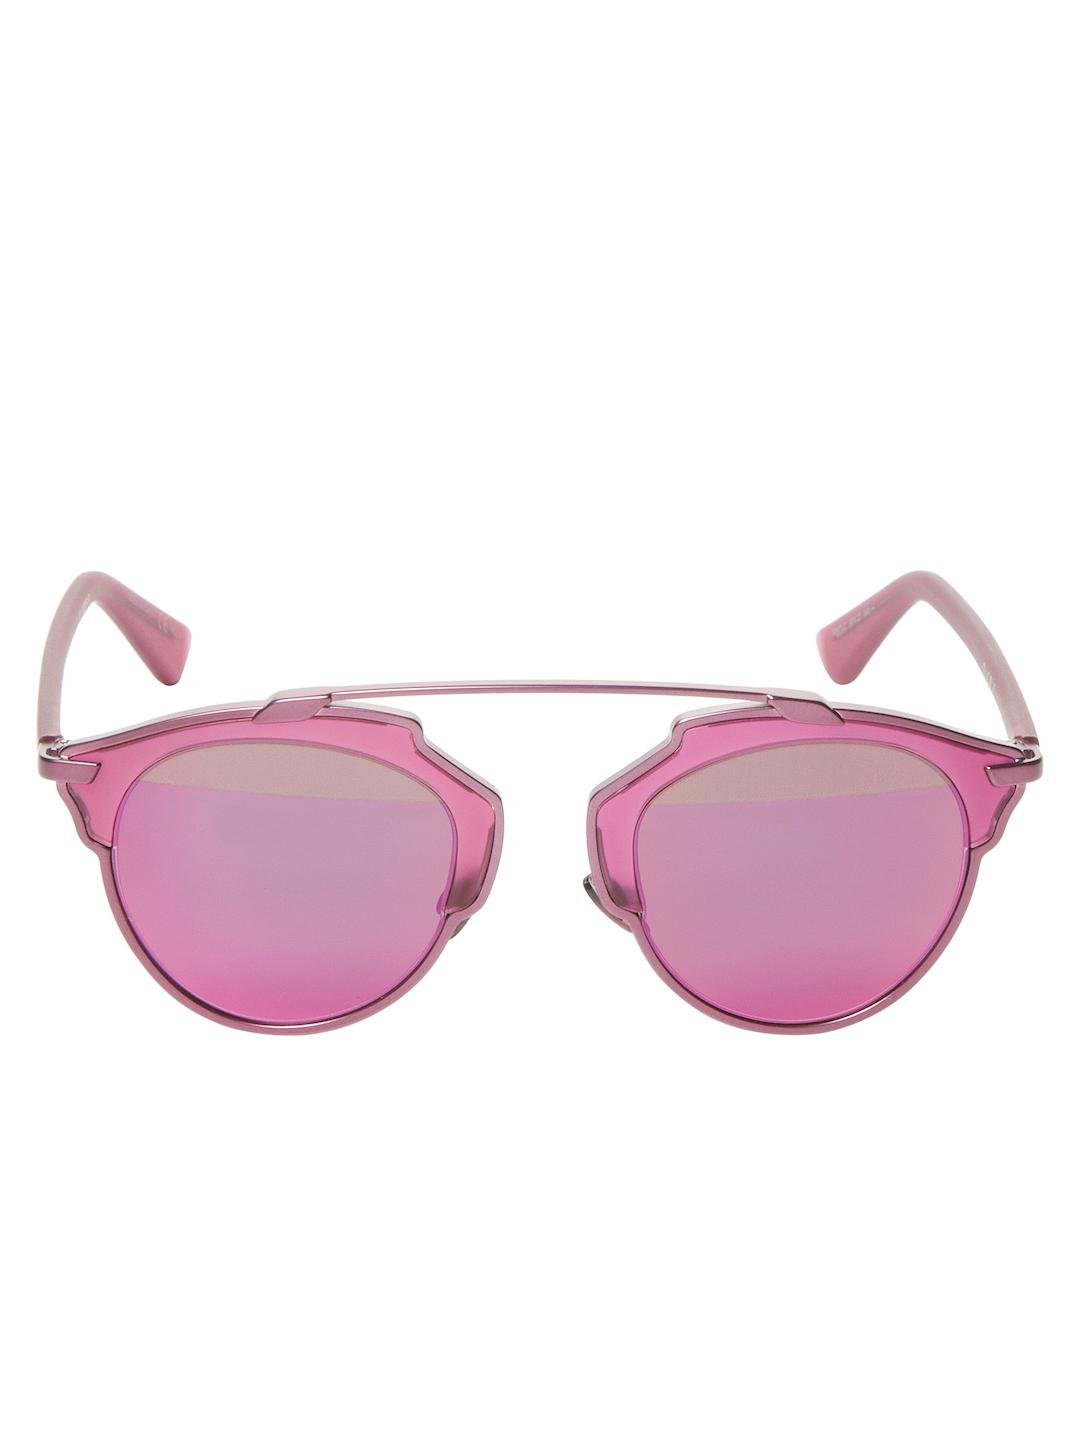 round frame sunglasses - Pink & Purple Dior